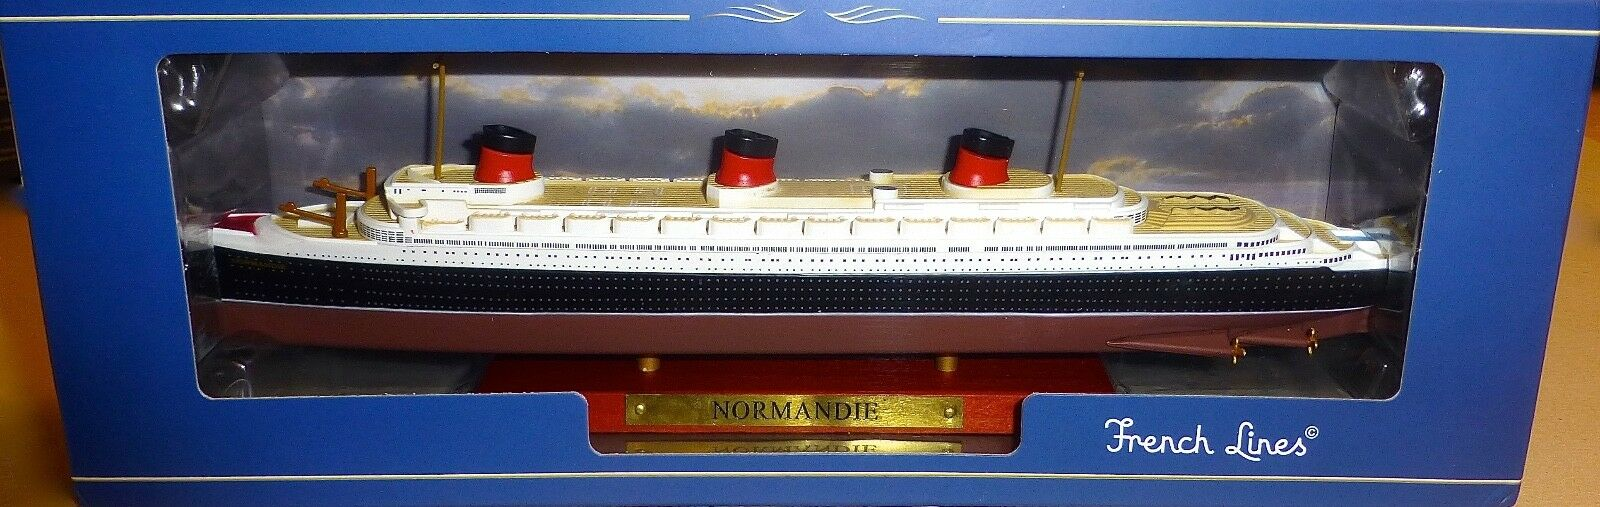 Normandy Ship Model Atlas French Lines New in Box 1 1250 Nip UI2 Μ